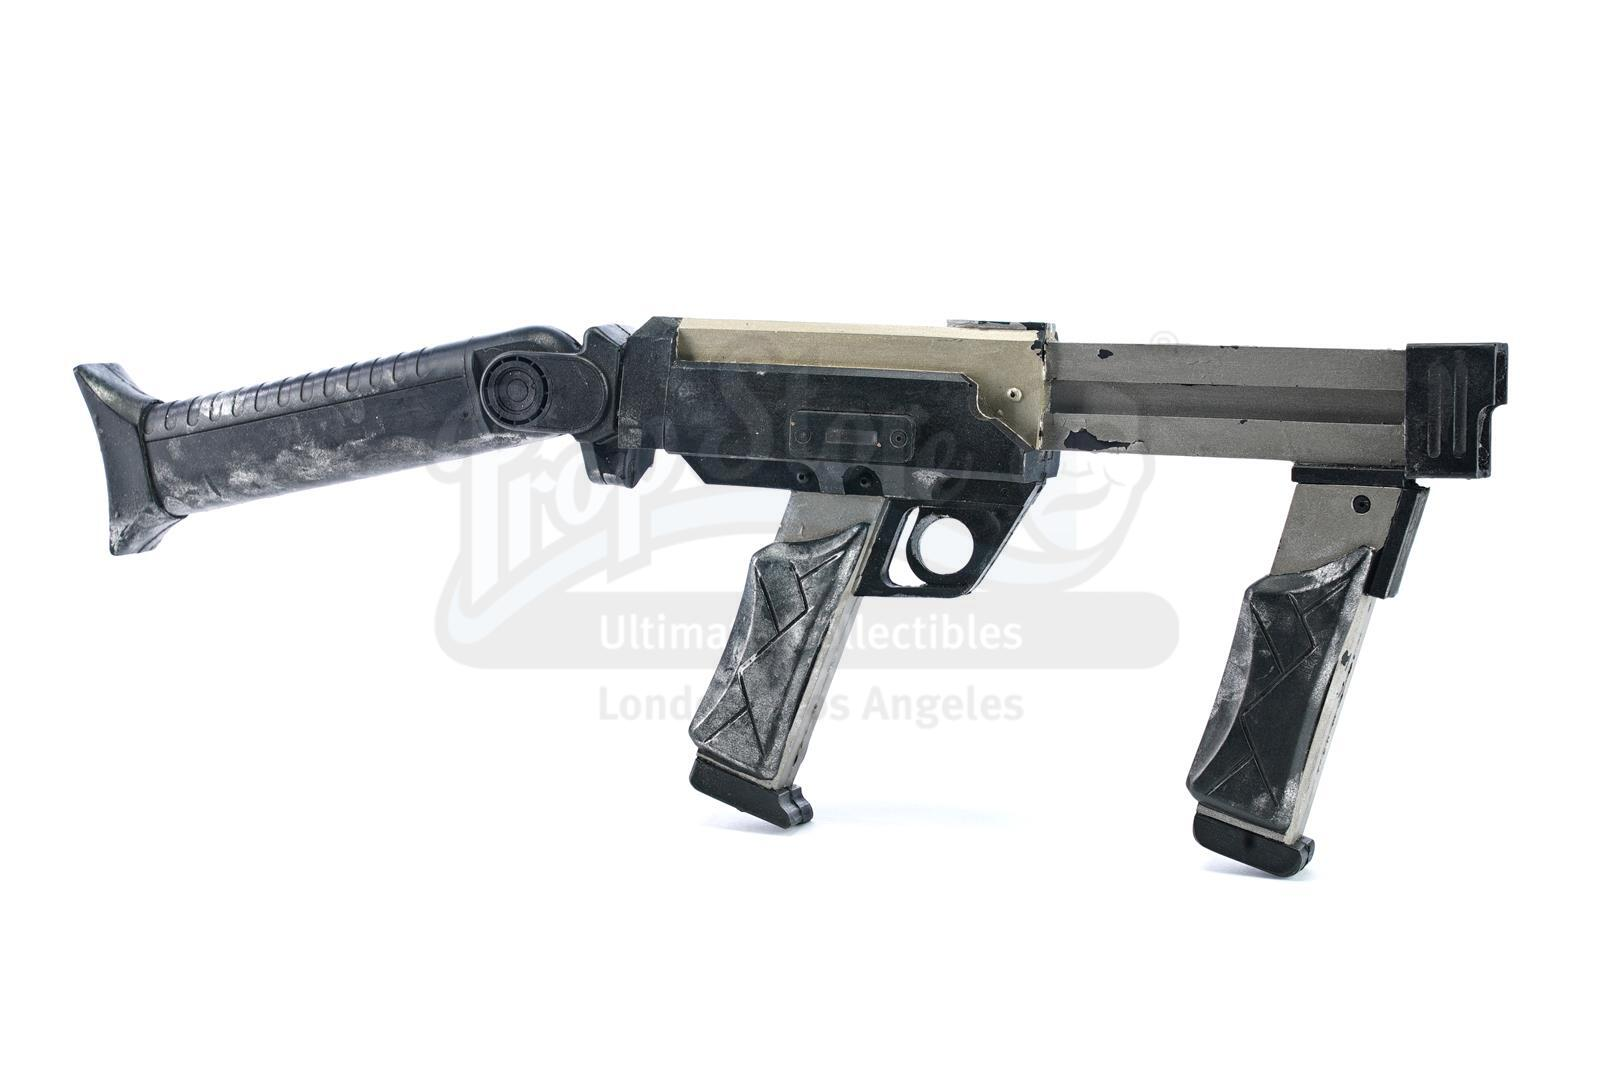 Lot # 851: LOST IN SPACE - Extended Laser Rifle